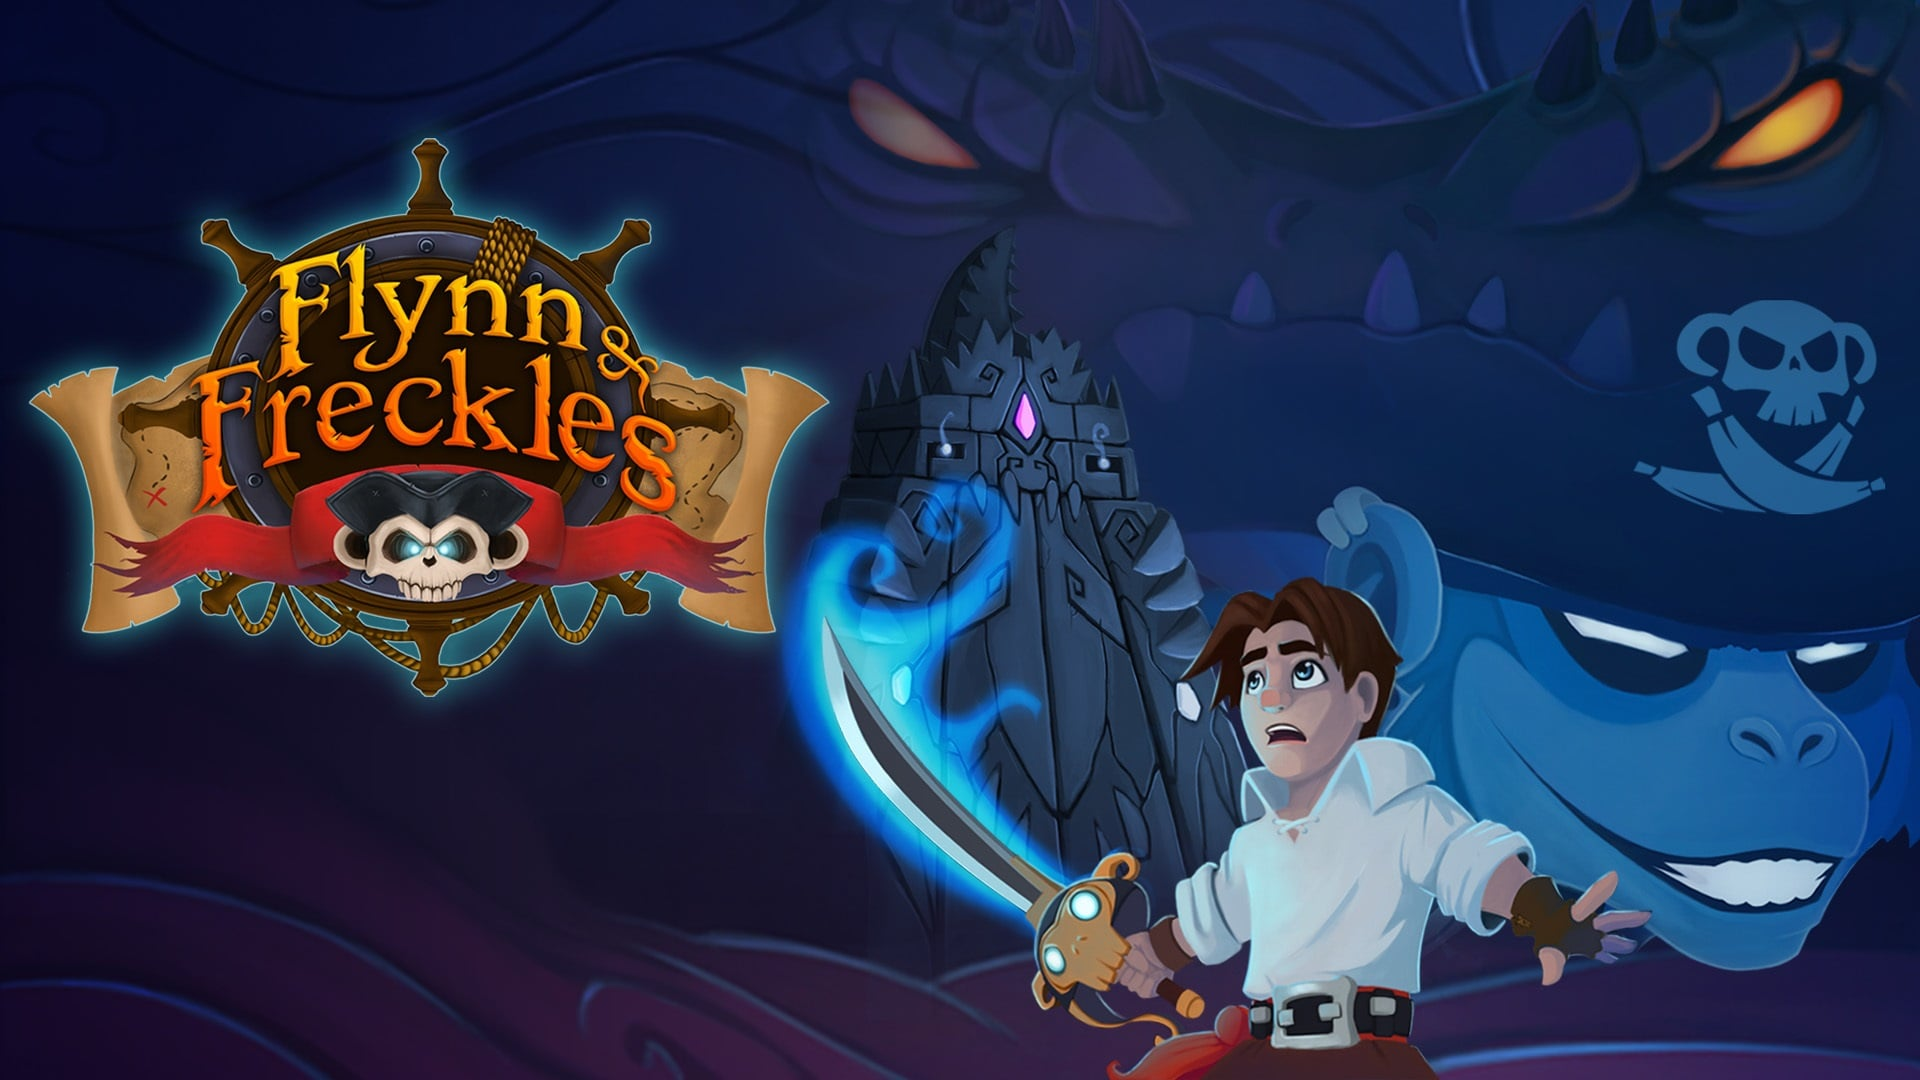 Flynn & Freckles (PS4) Review